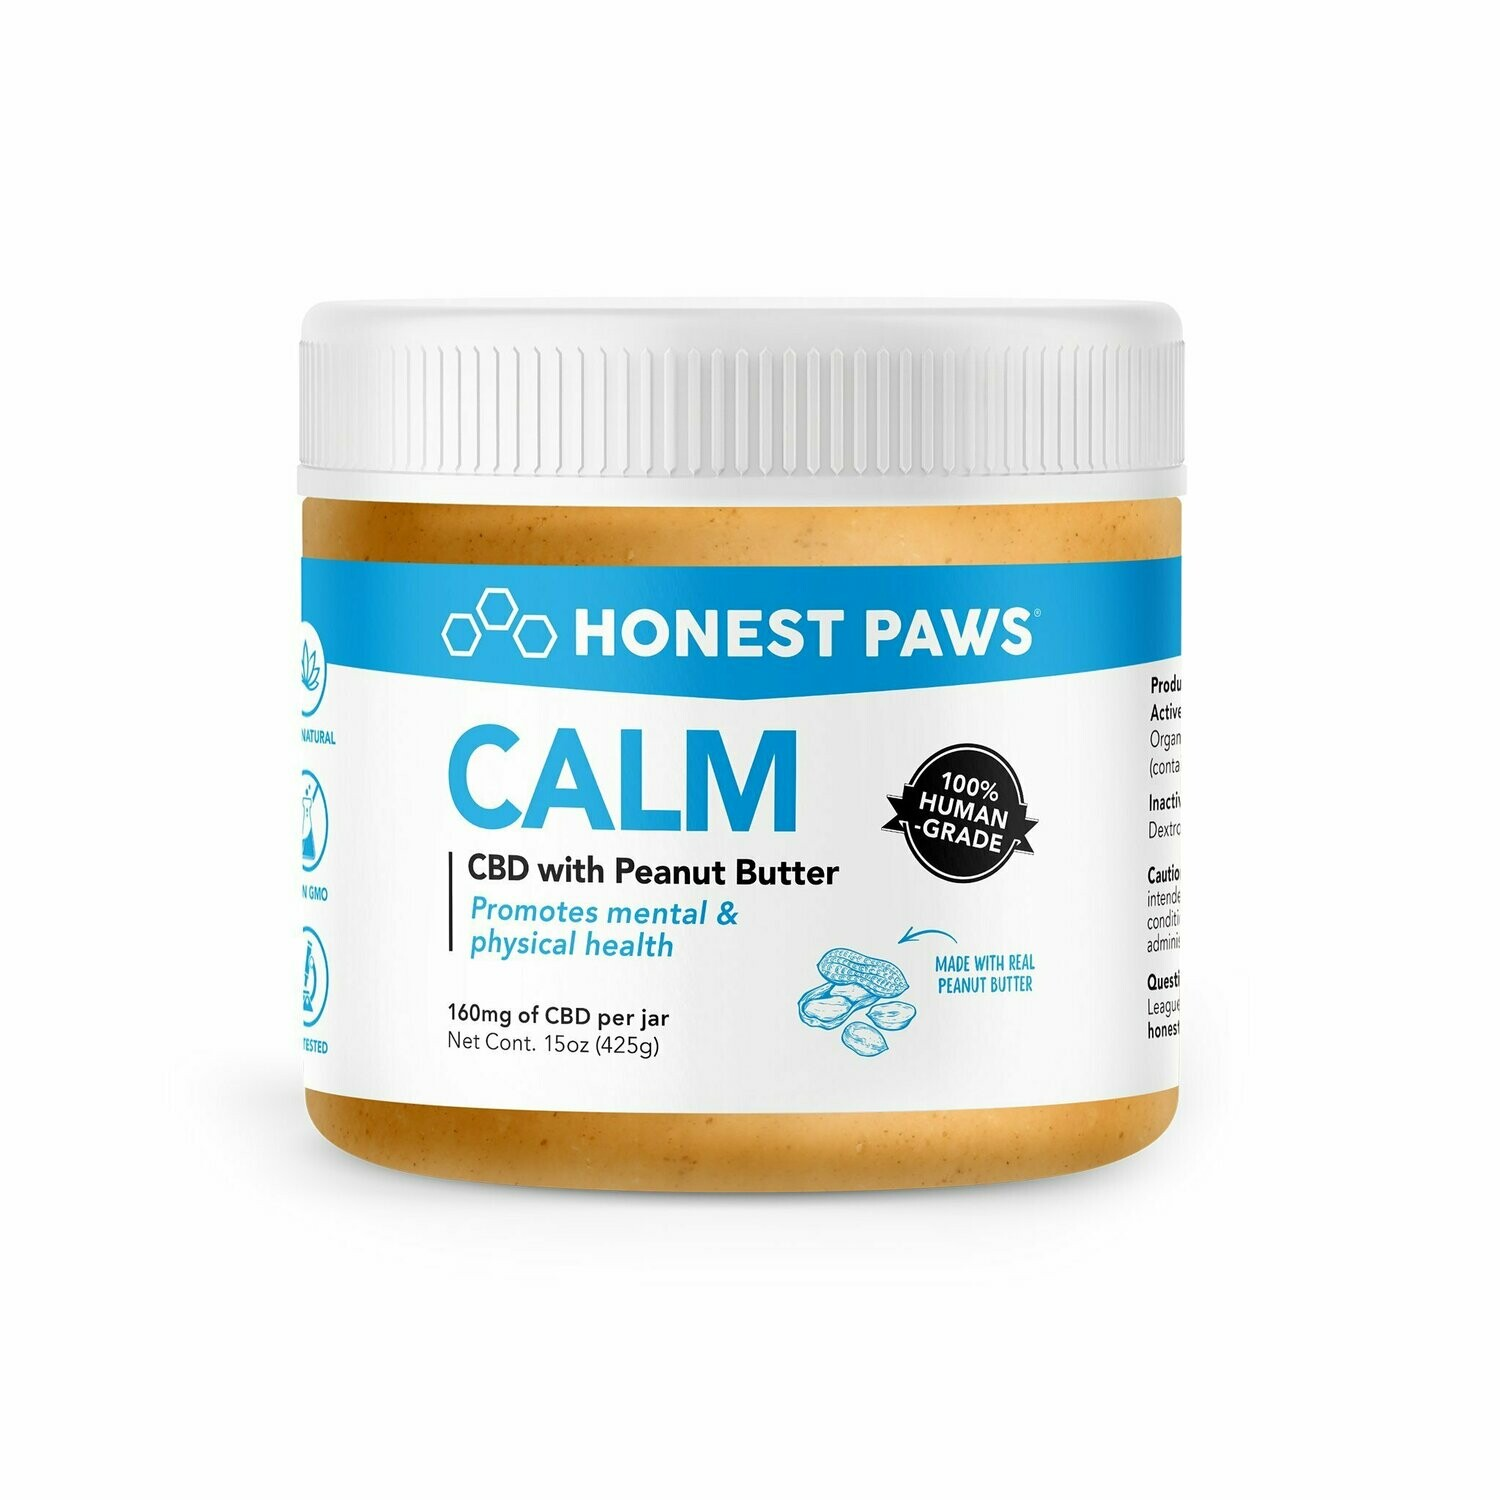 CALM CBD with Peanut Butter | 160MG